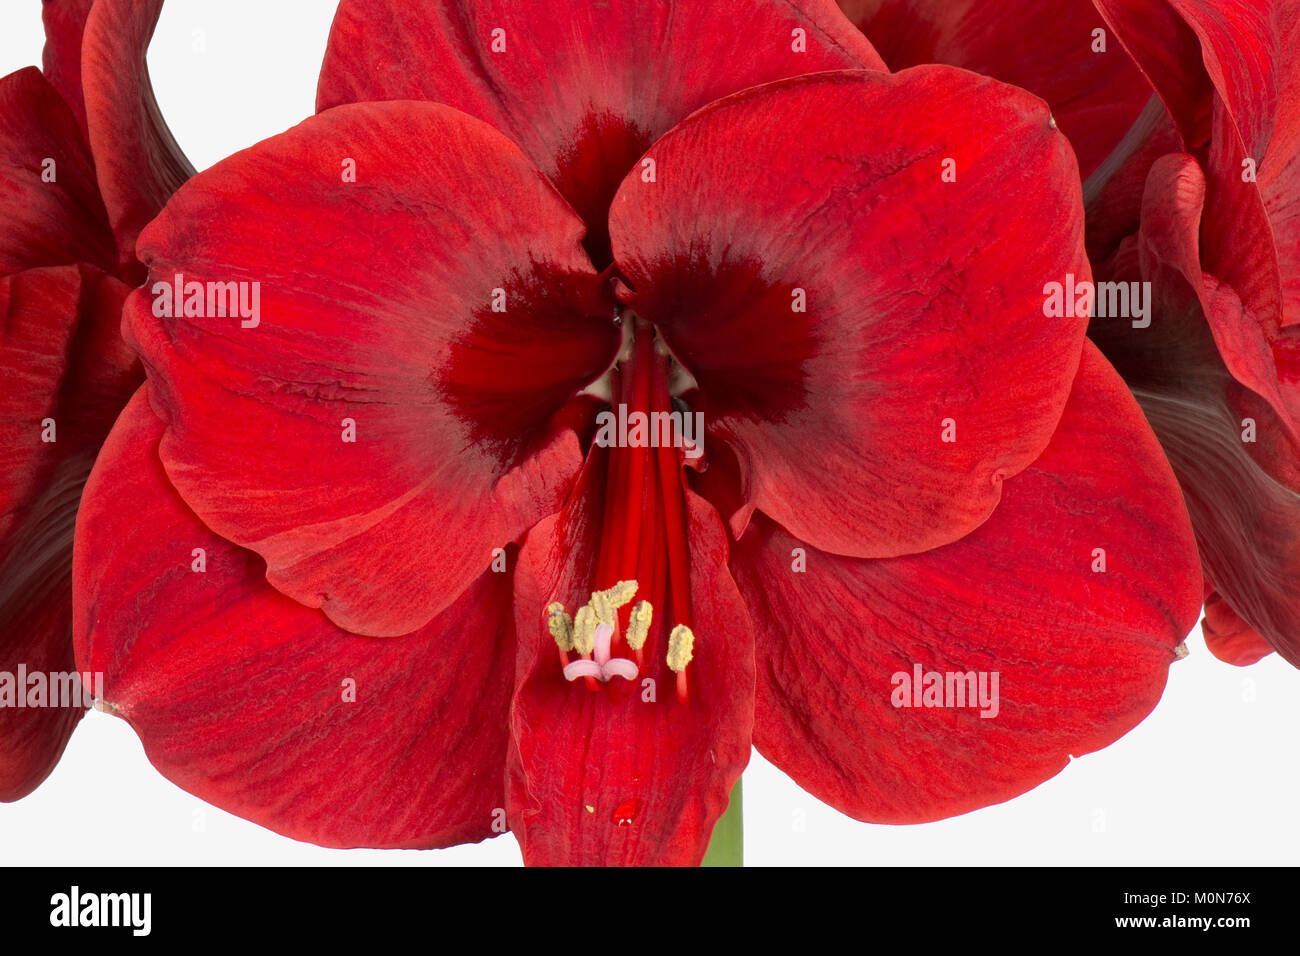 Deep red flowers from large bulb of Amaryllis, Hippeastrum spp, at Christmas Stock Photo